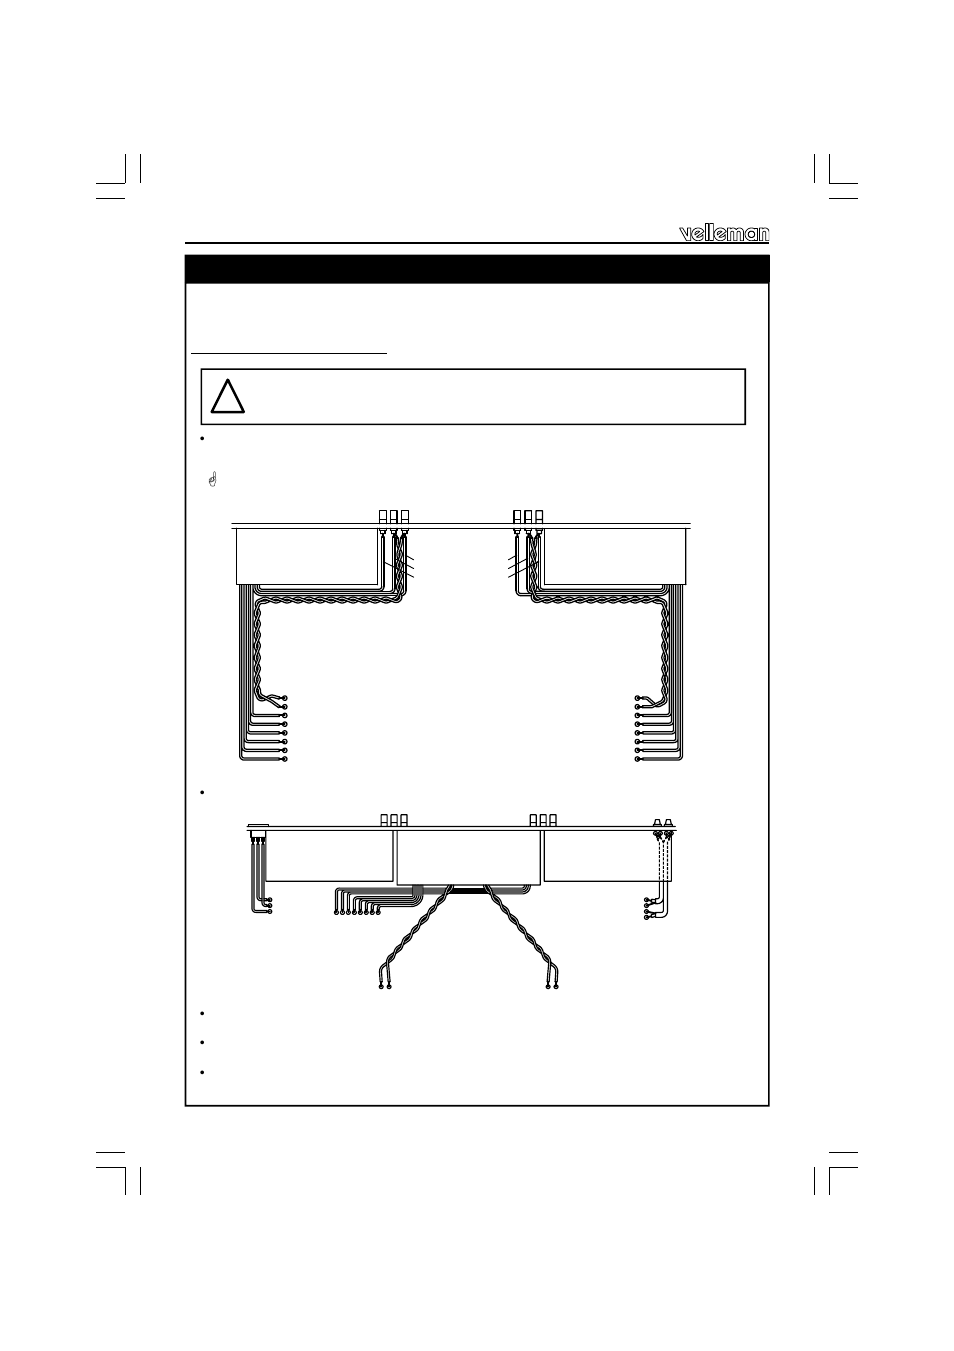 hight resolution of assembly and wiring connection of the transformers fig 9 0 fig 10 velleman projects k4040 assembly instructions user manual page 18 28